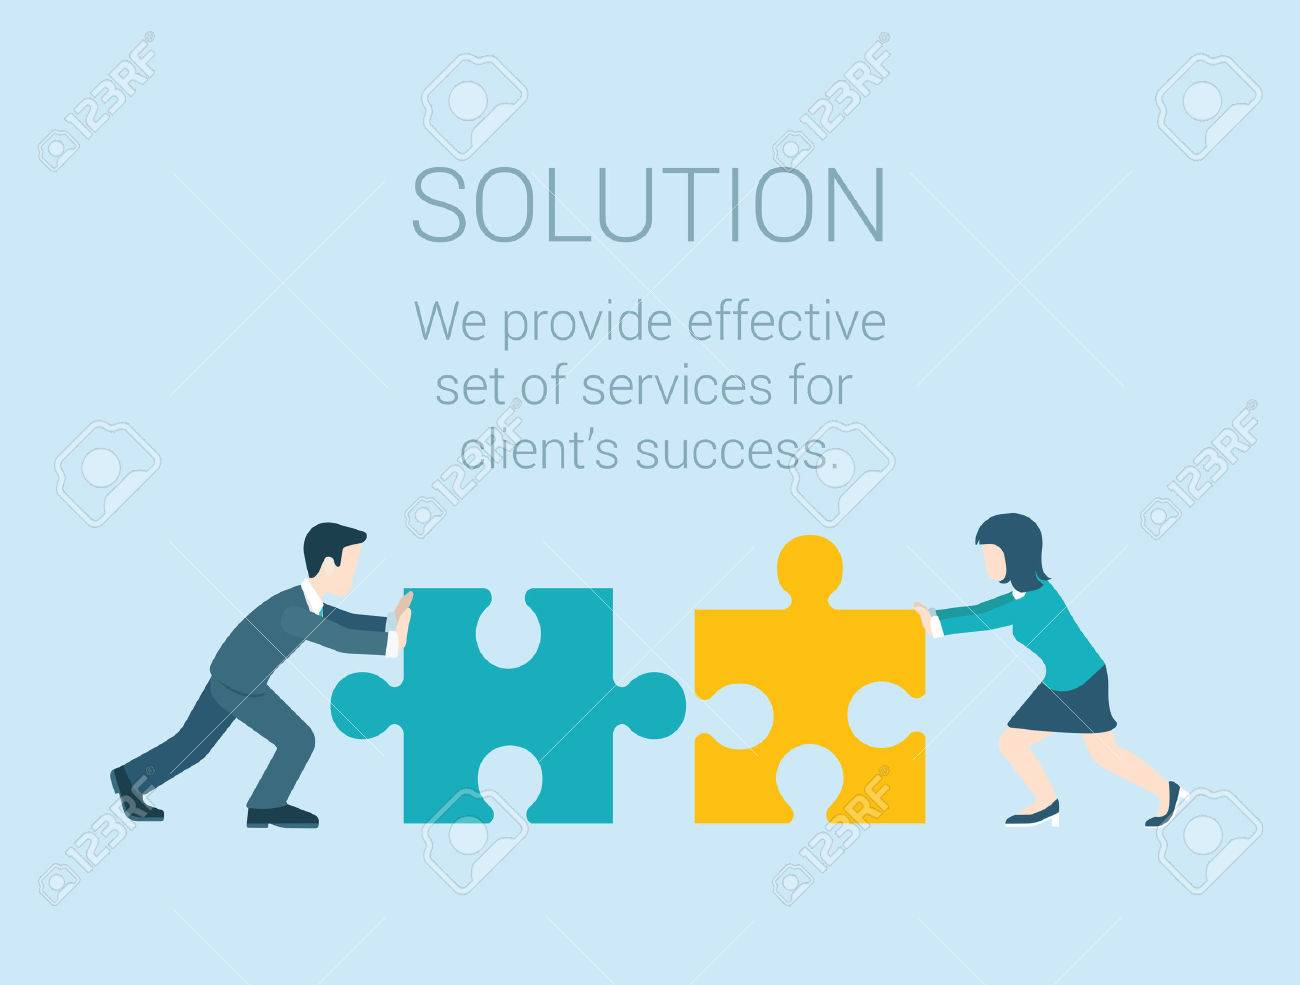 Flat style modern infographic business solution concept. Conceptual web illustration businessman and businesswoman characters connecting puzzle pieces. - 48545043